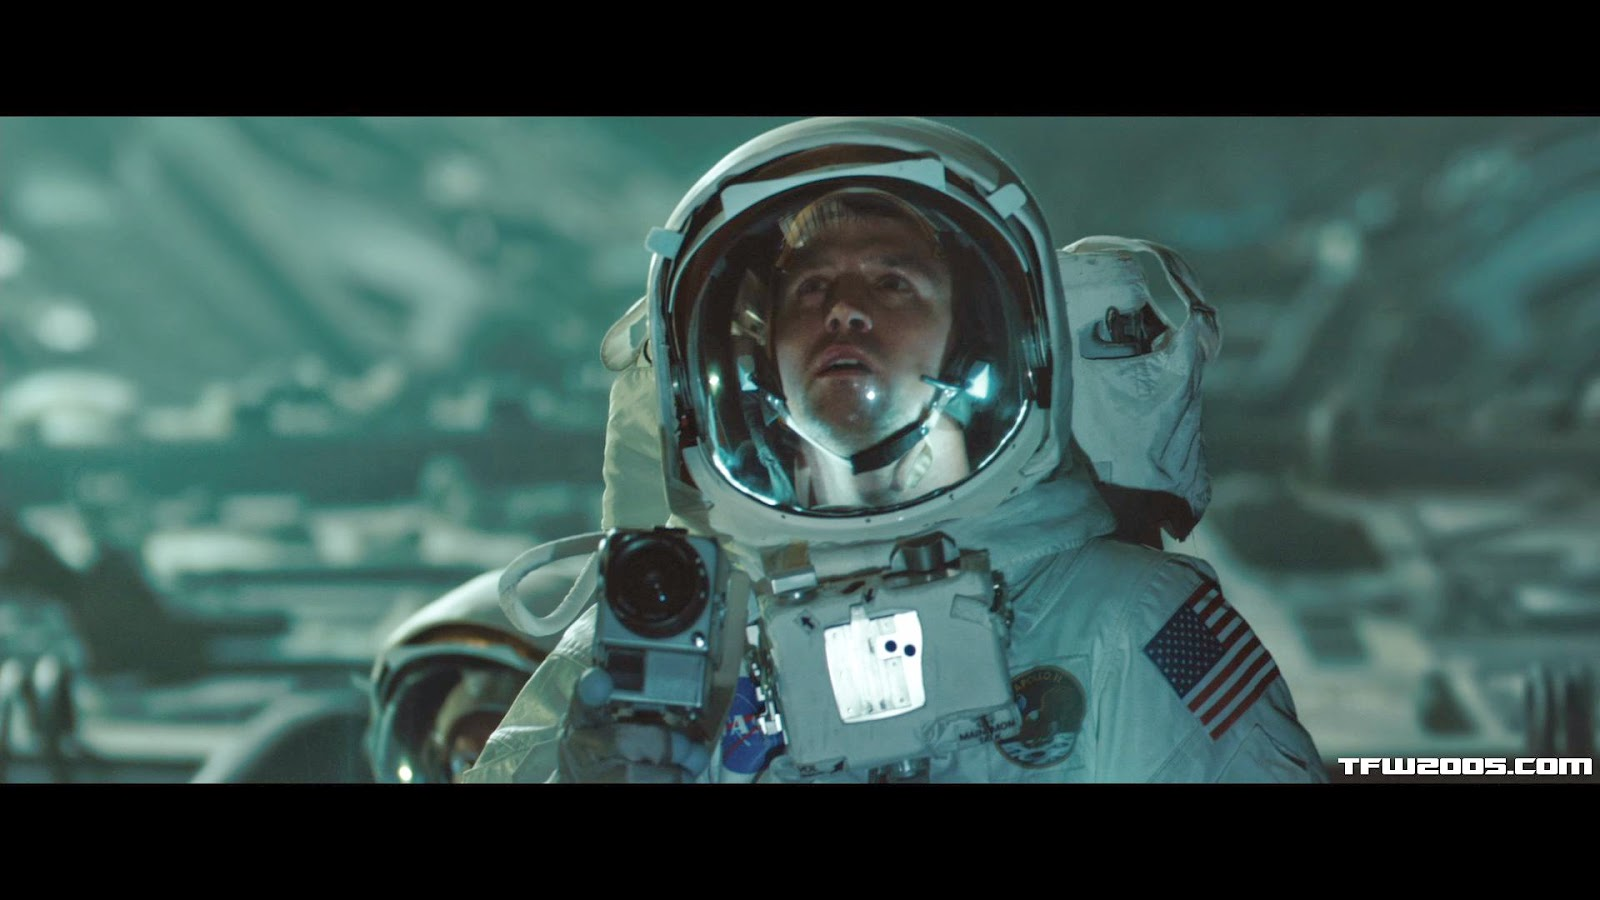 neil armstrong movie - HD 1920×1080